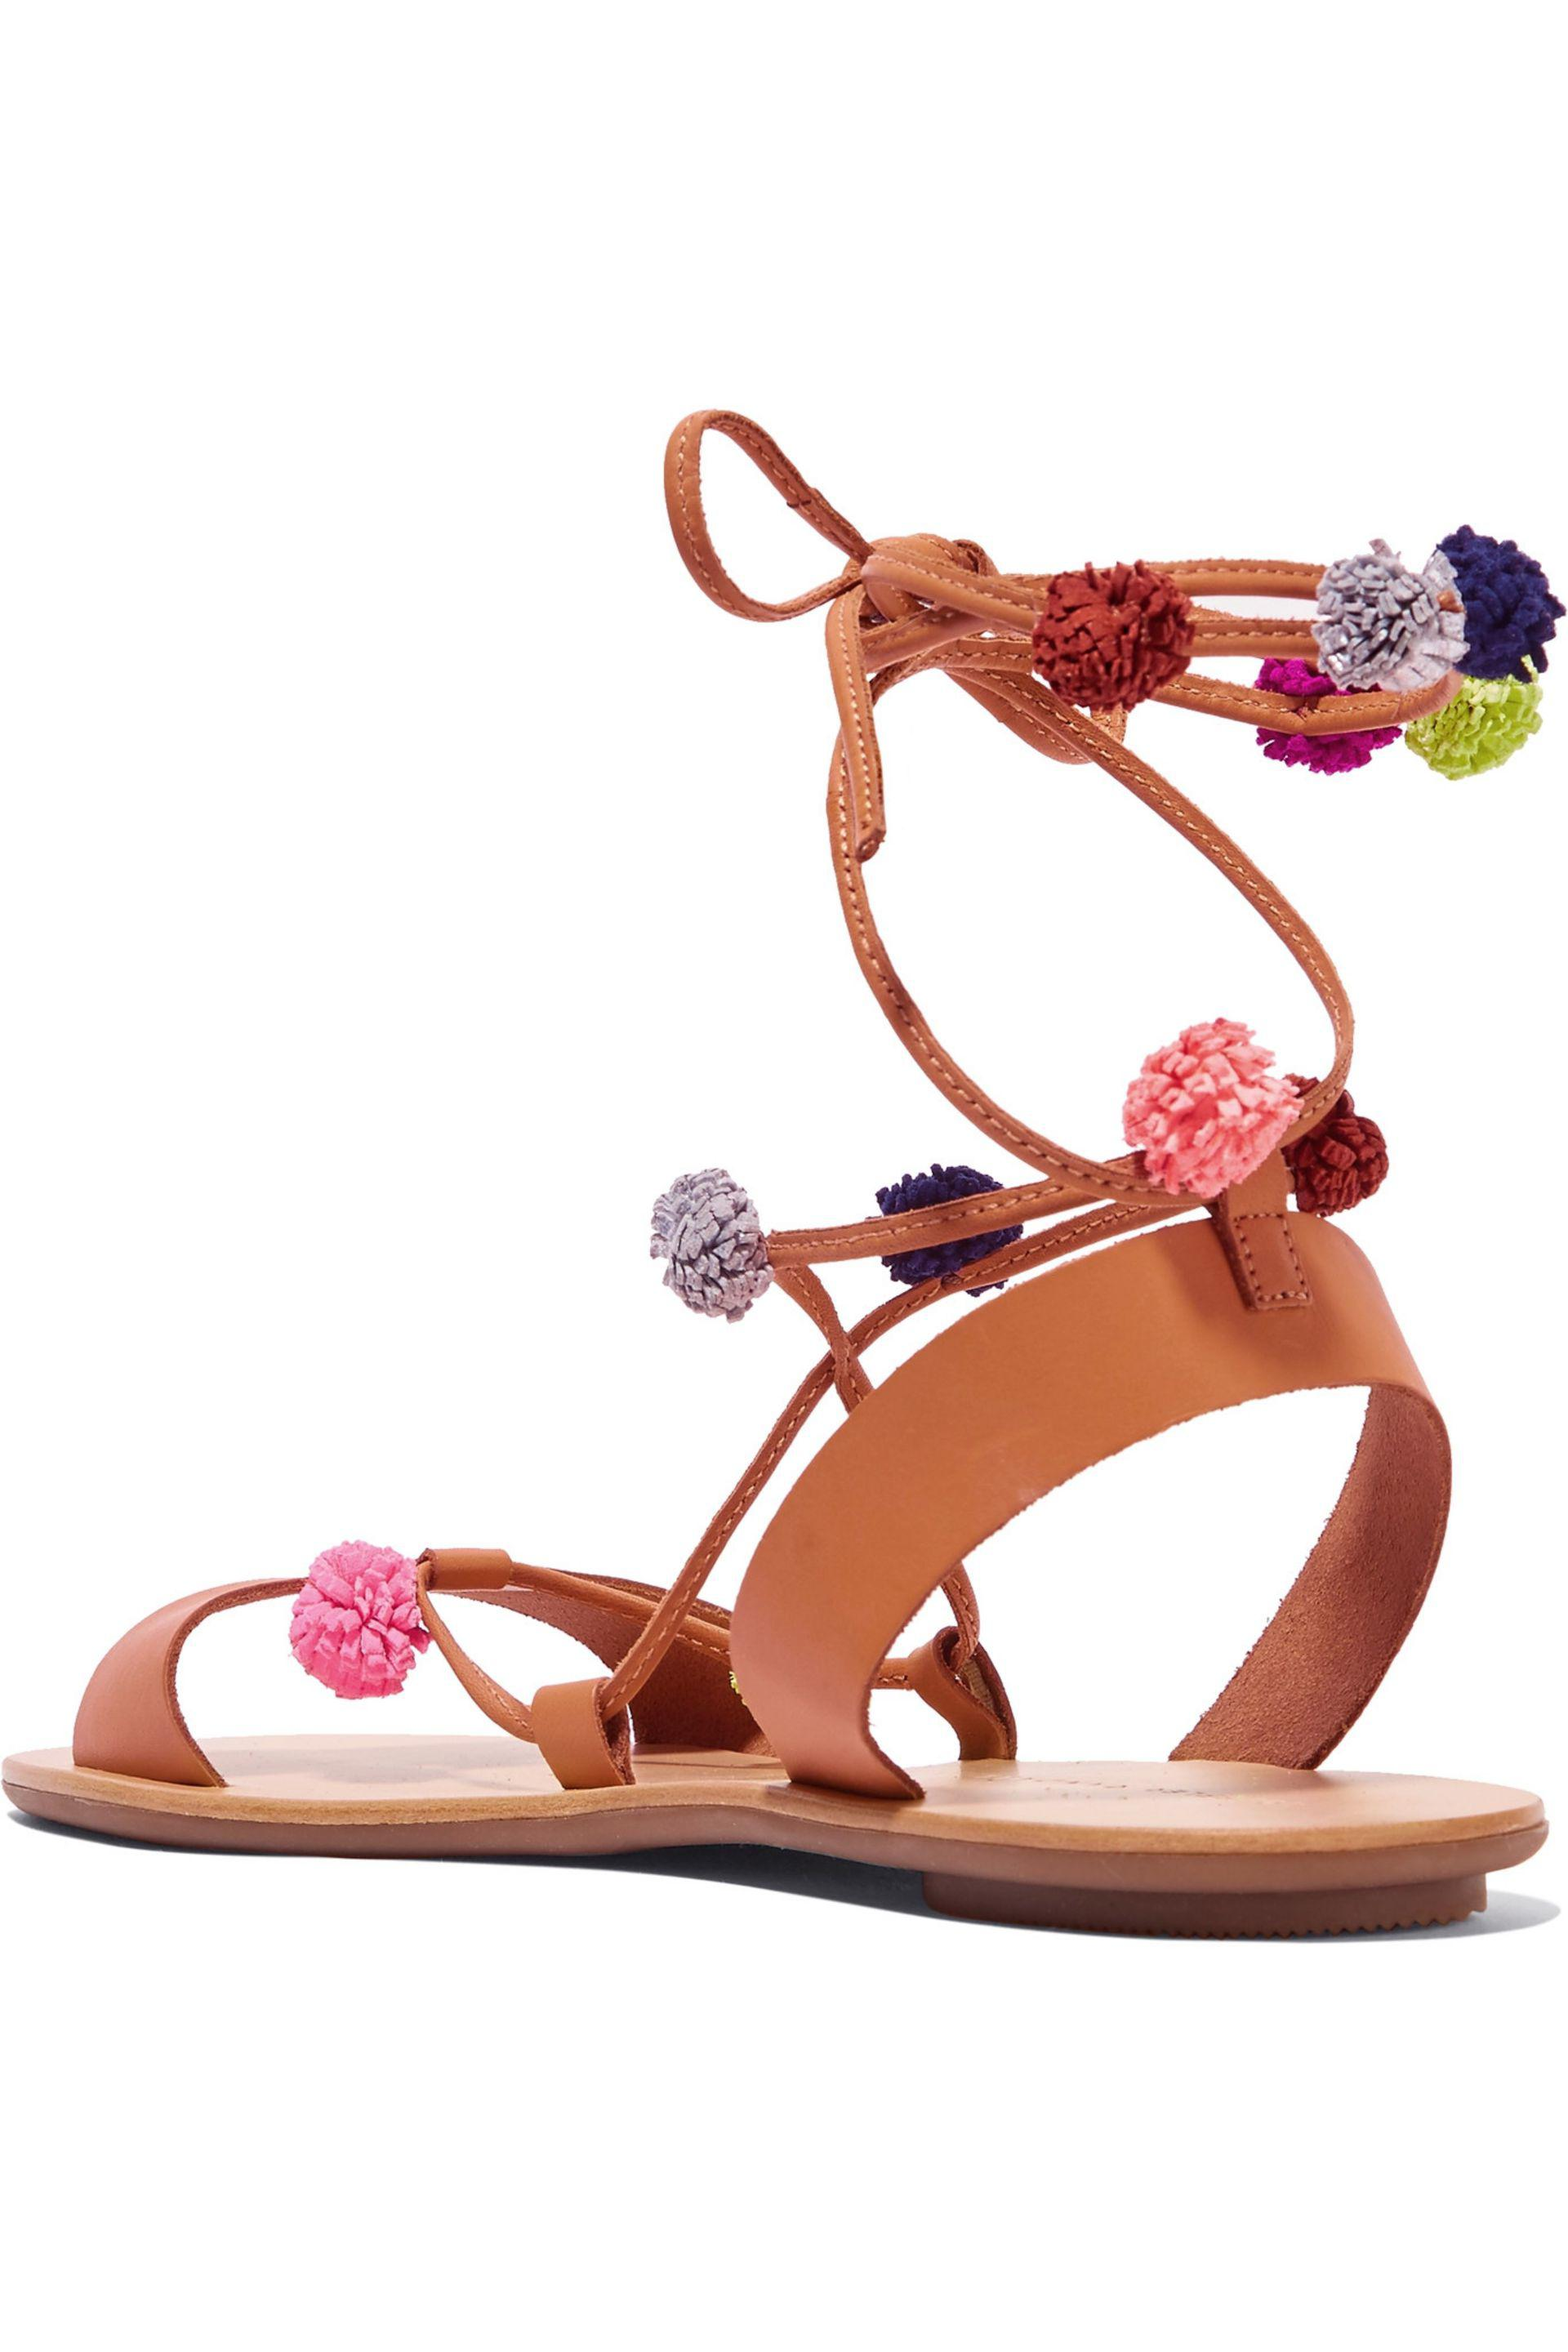 Angler Pom-pom Sandals Tan Jada free shipping explore clearance cheapest price sale geniue stockist cheap sale perfect In2Jb